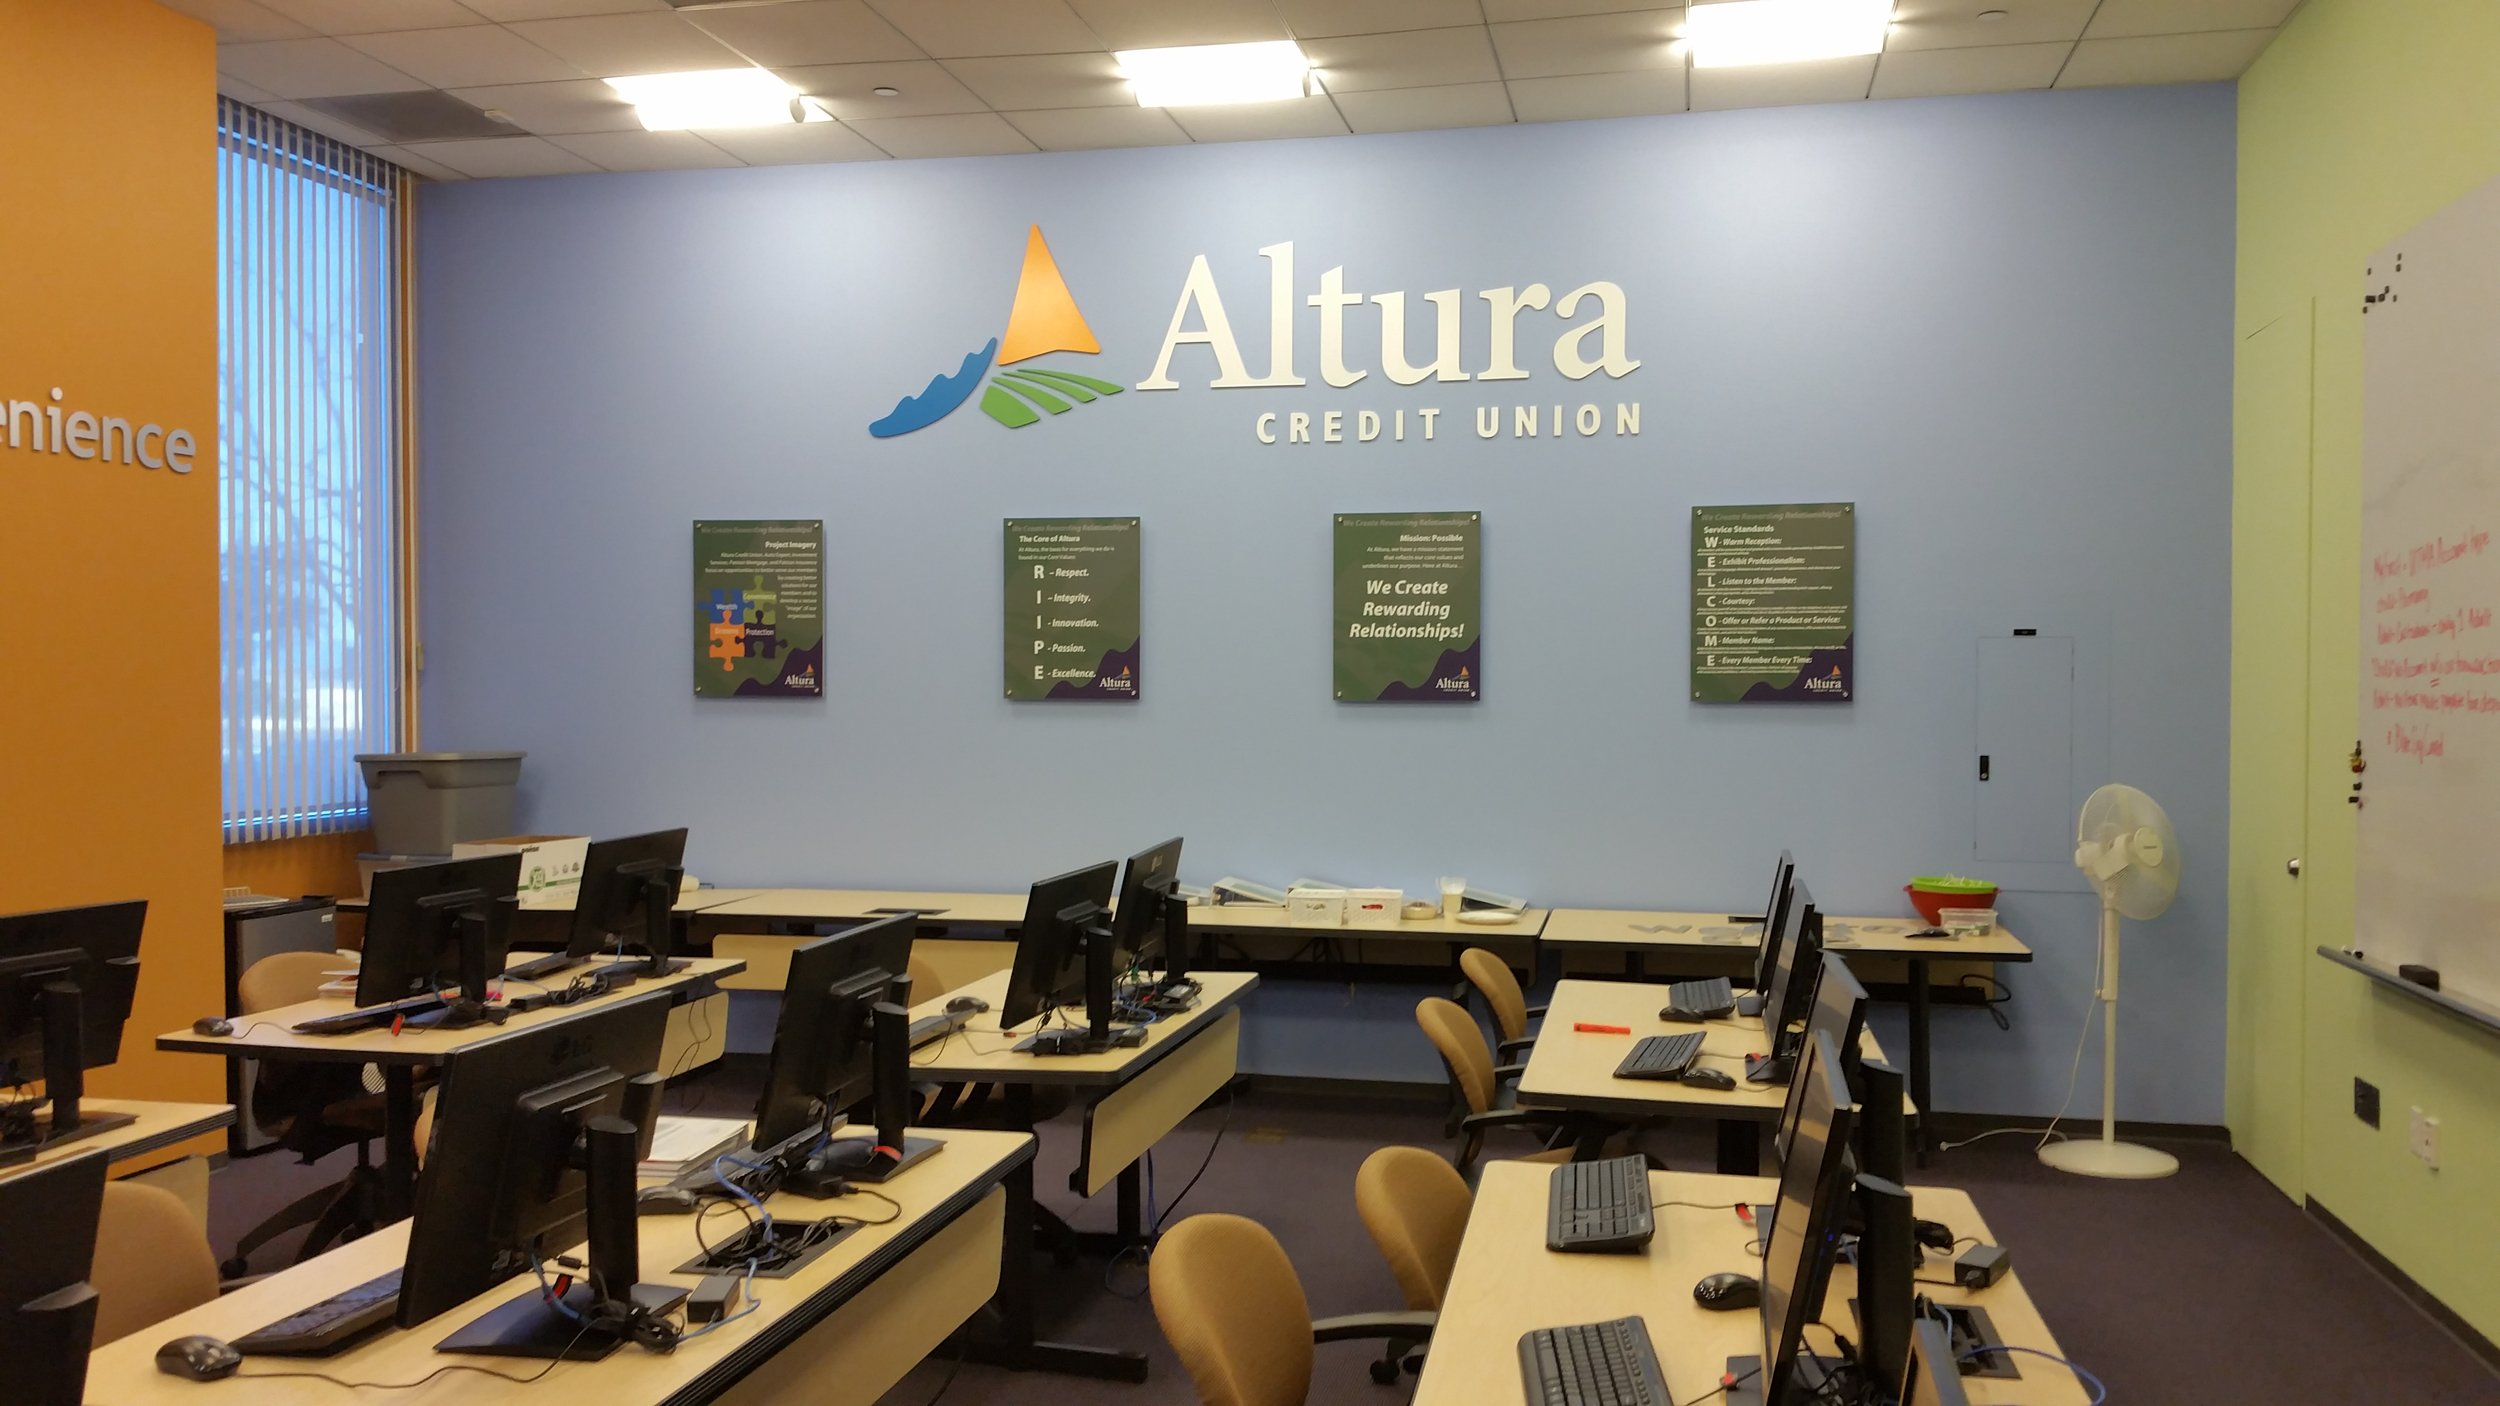 Altura Credit Union training center dimensional logo